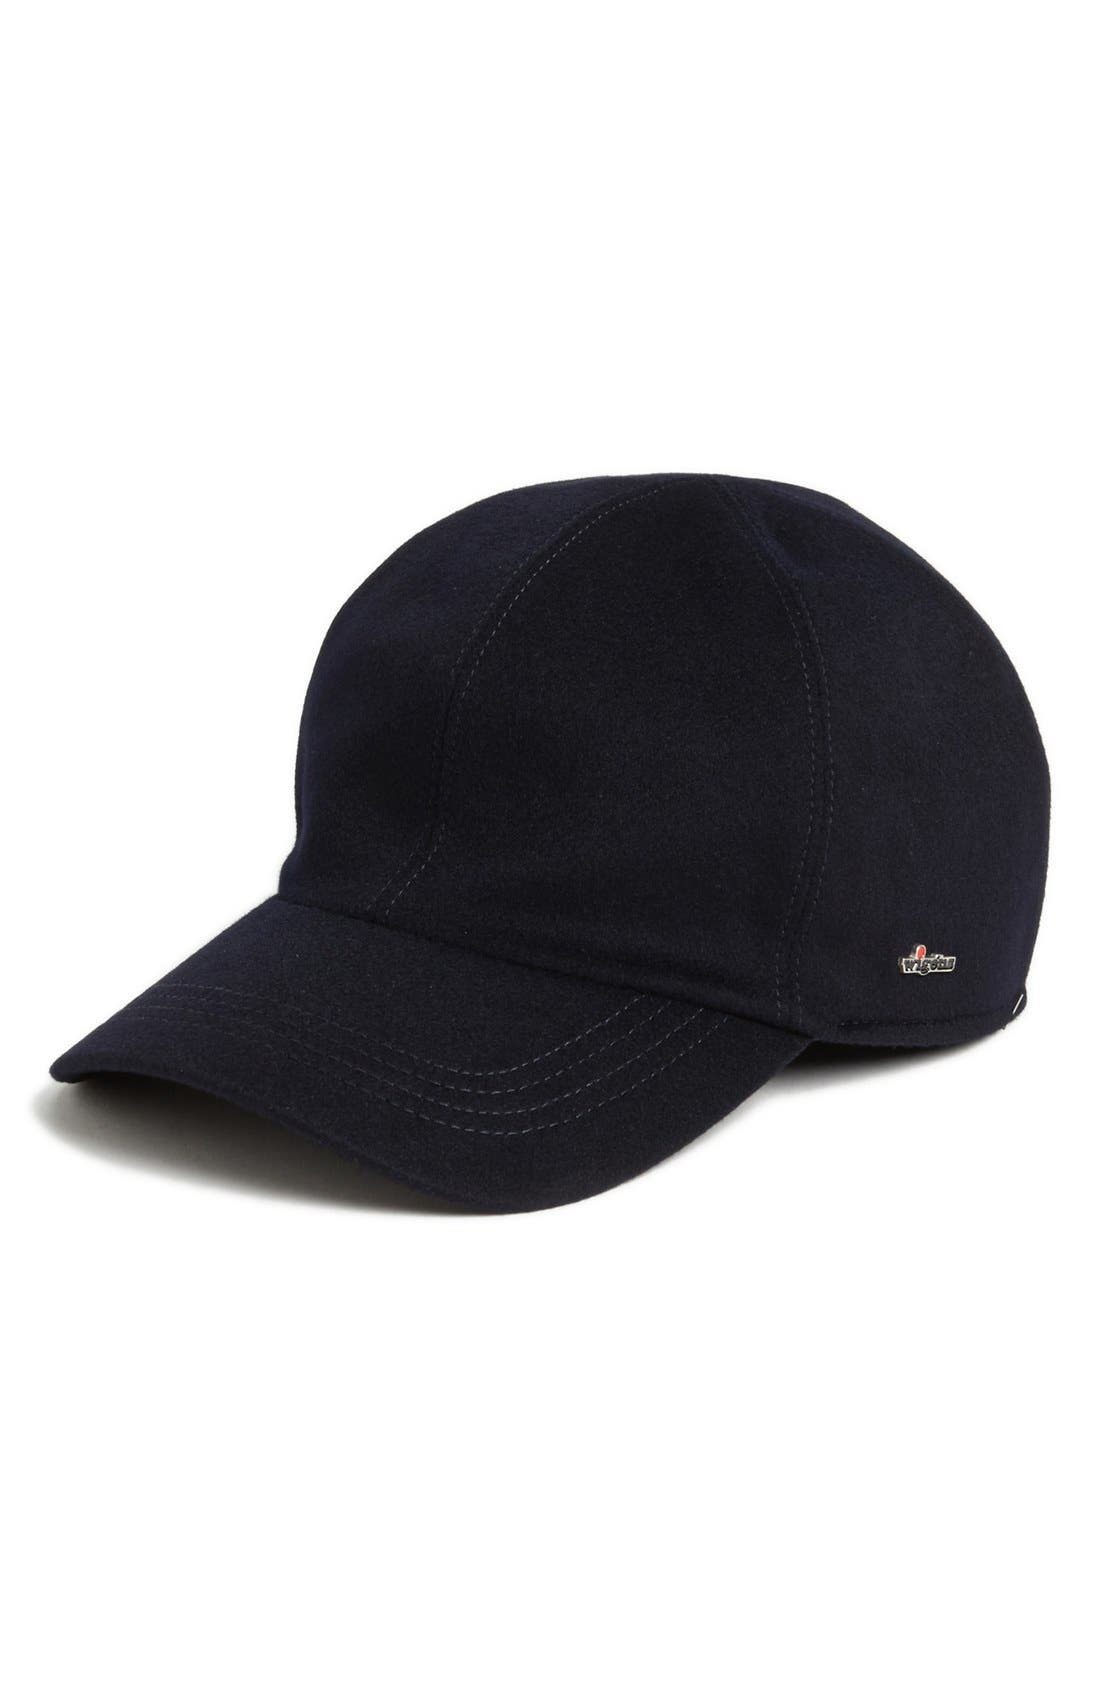 'Loro Piana Storm System' Earflap Baseball Cap,                         Main,                         color, Navy